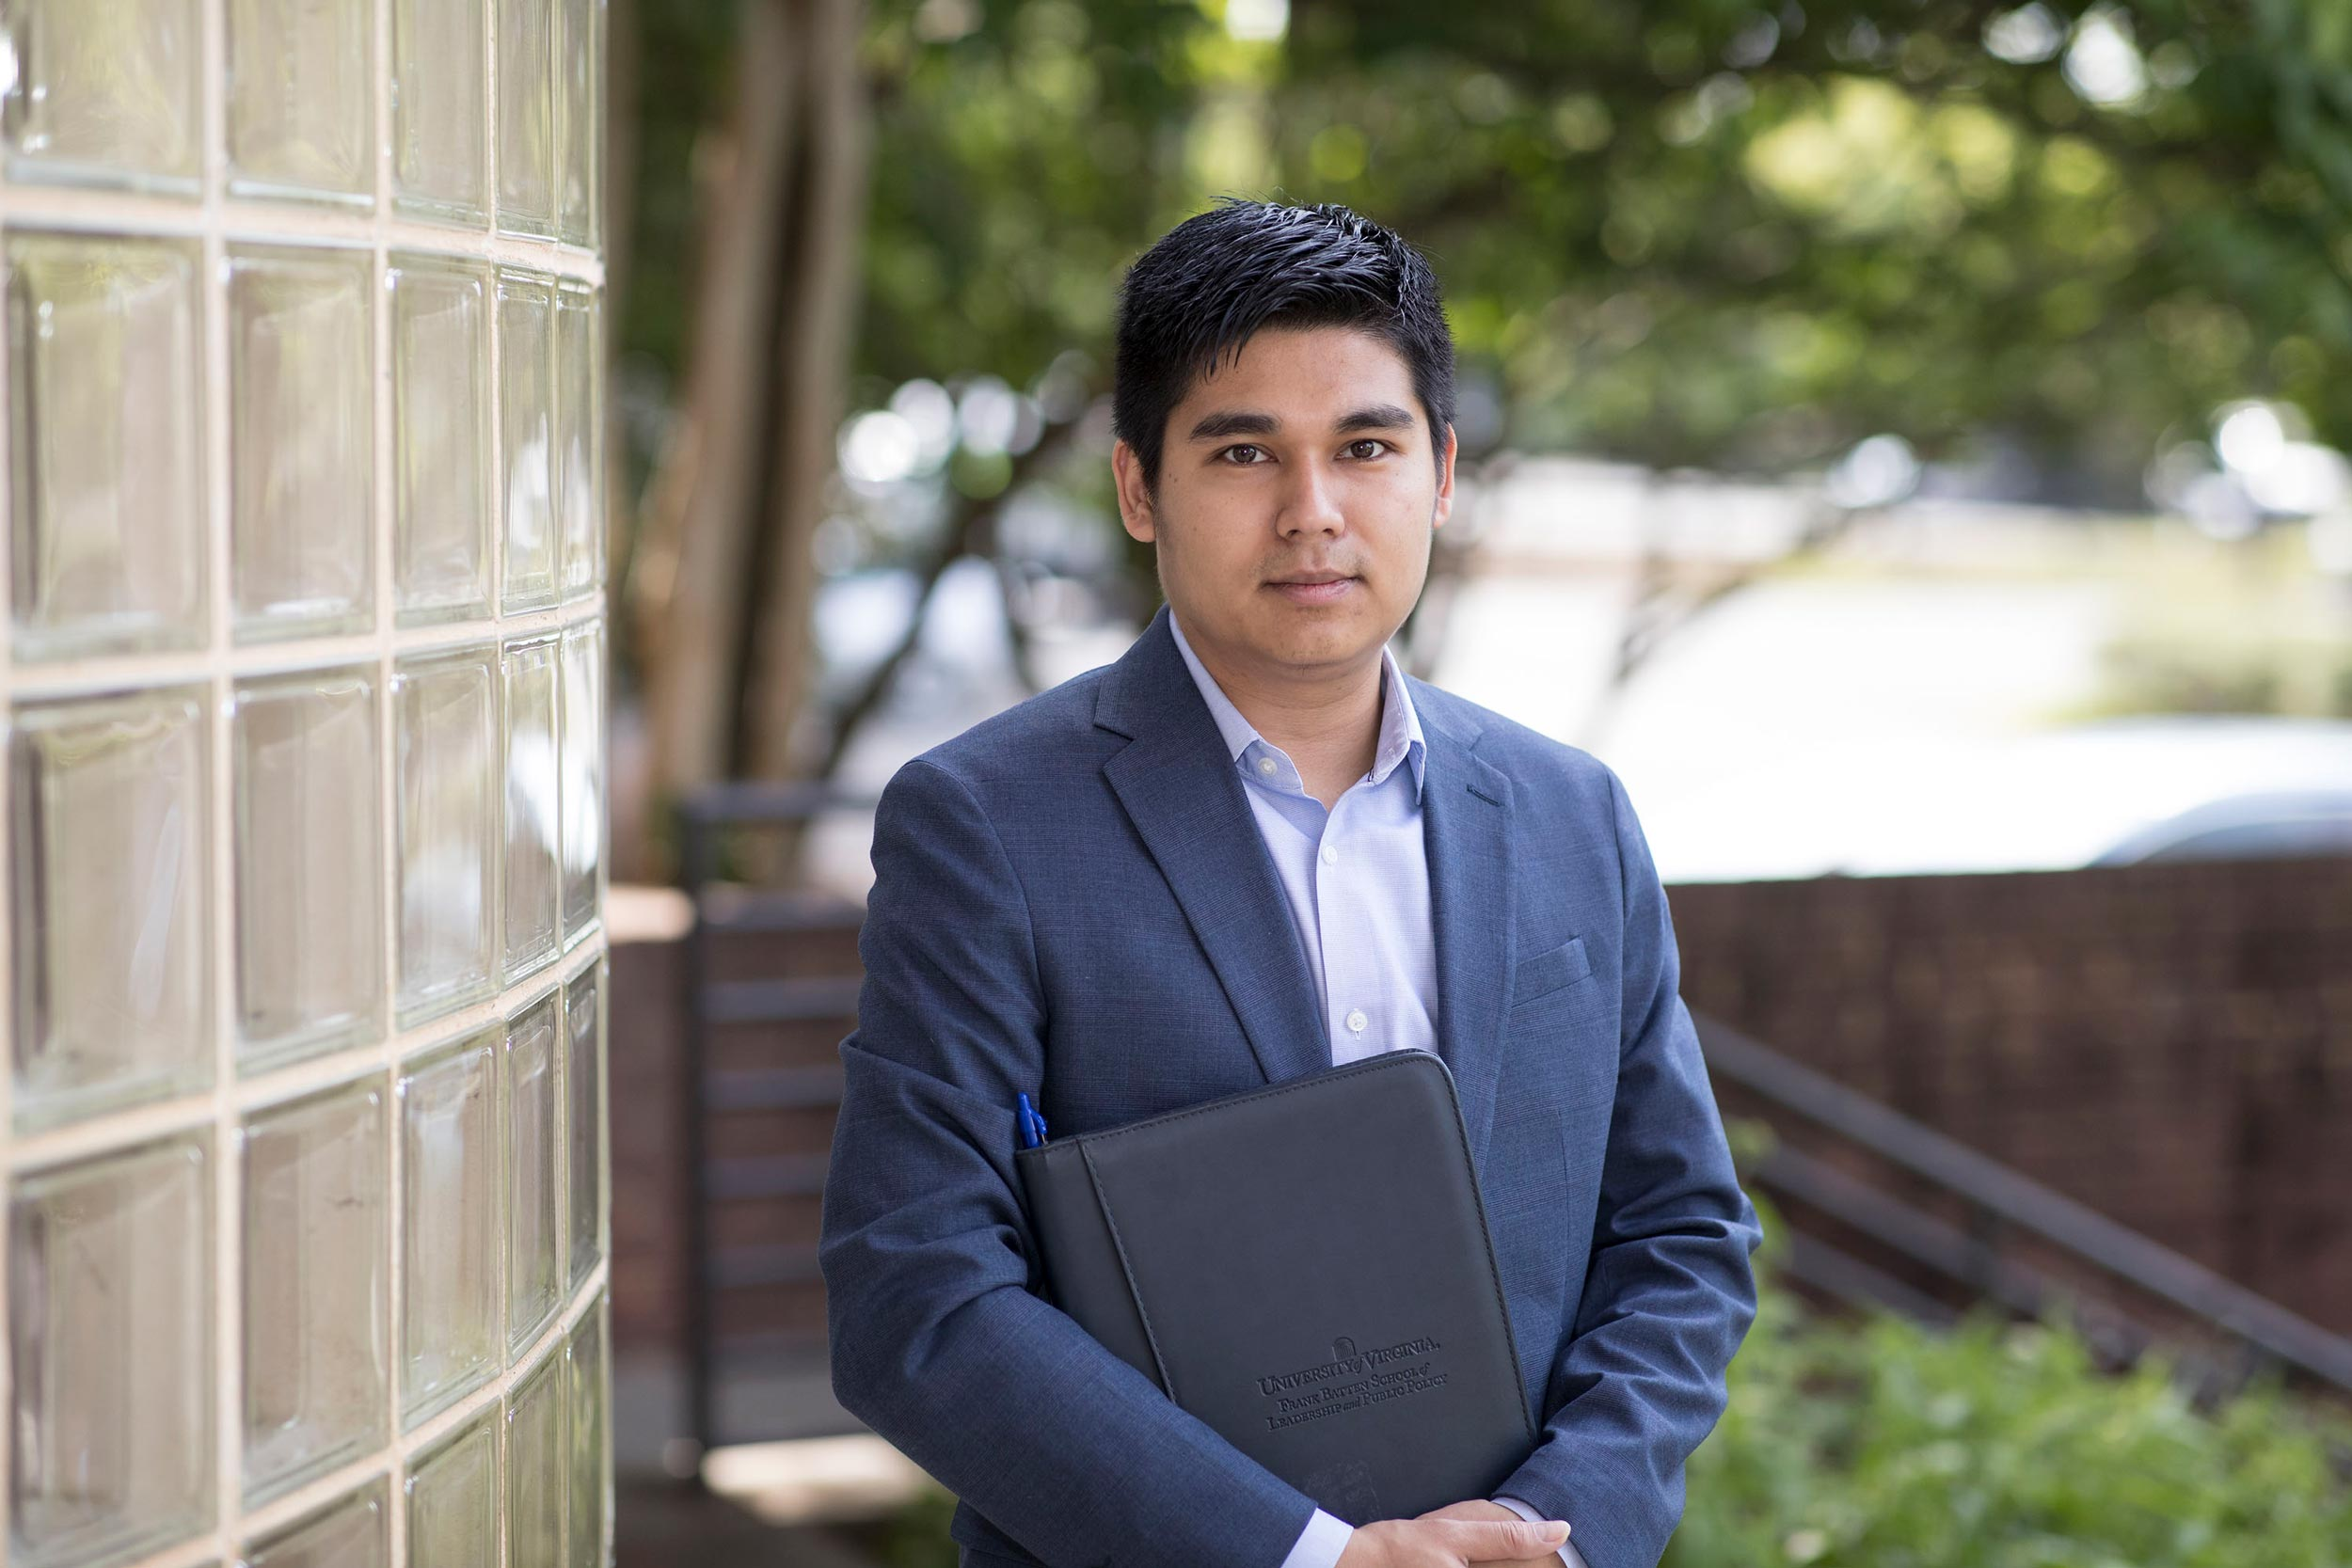 Kyaw Khine, a research and policy analyst at UVA's Weldon Cooper Center for Public Service, released a new report showing a marked increase in bachelor's and advanced degrees.